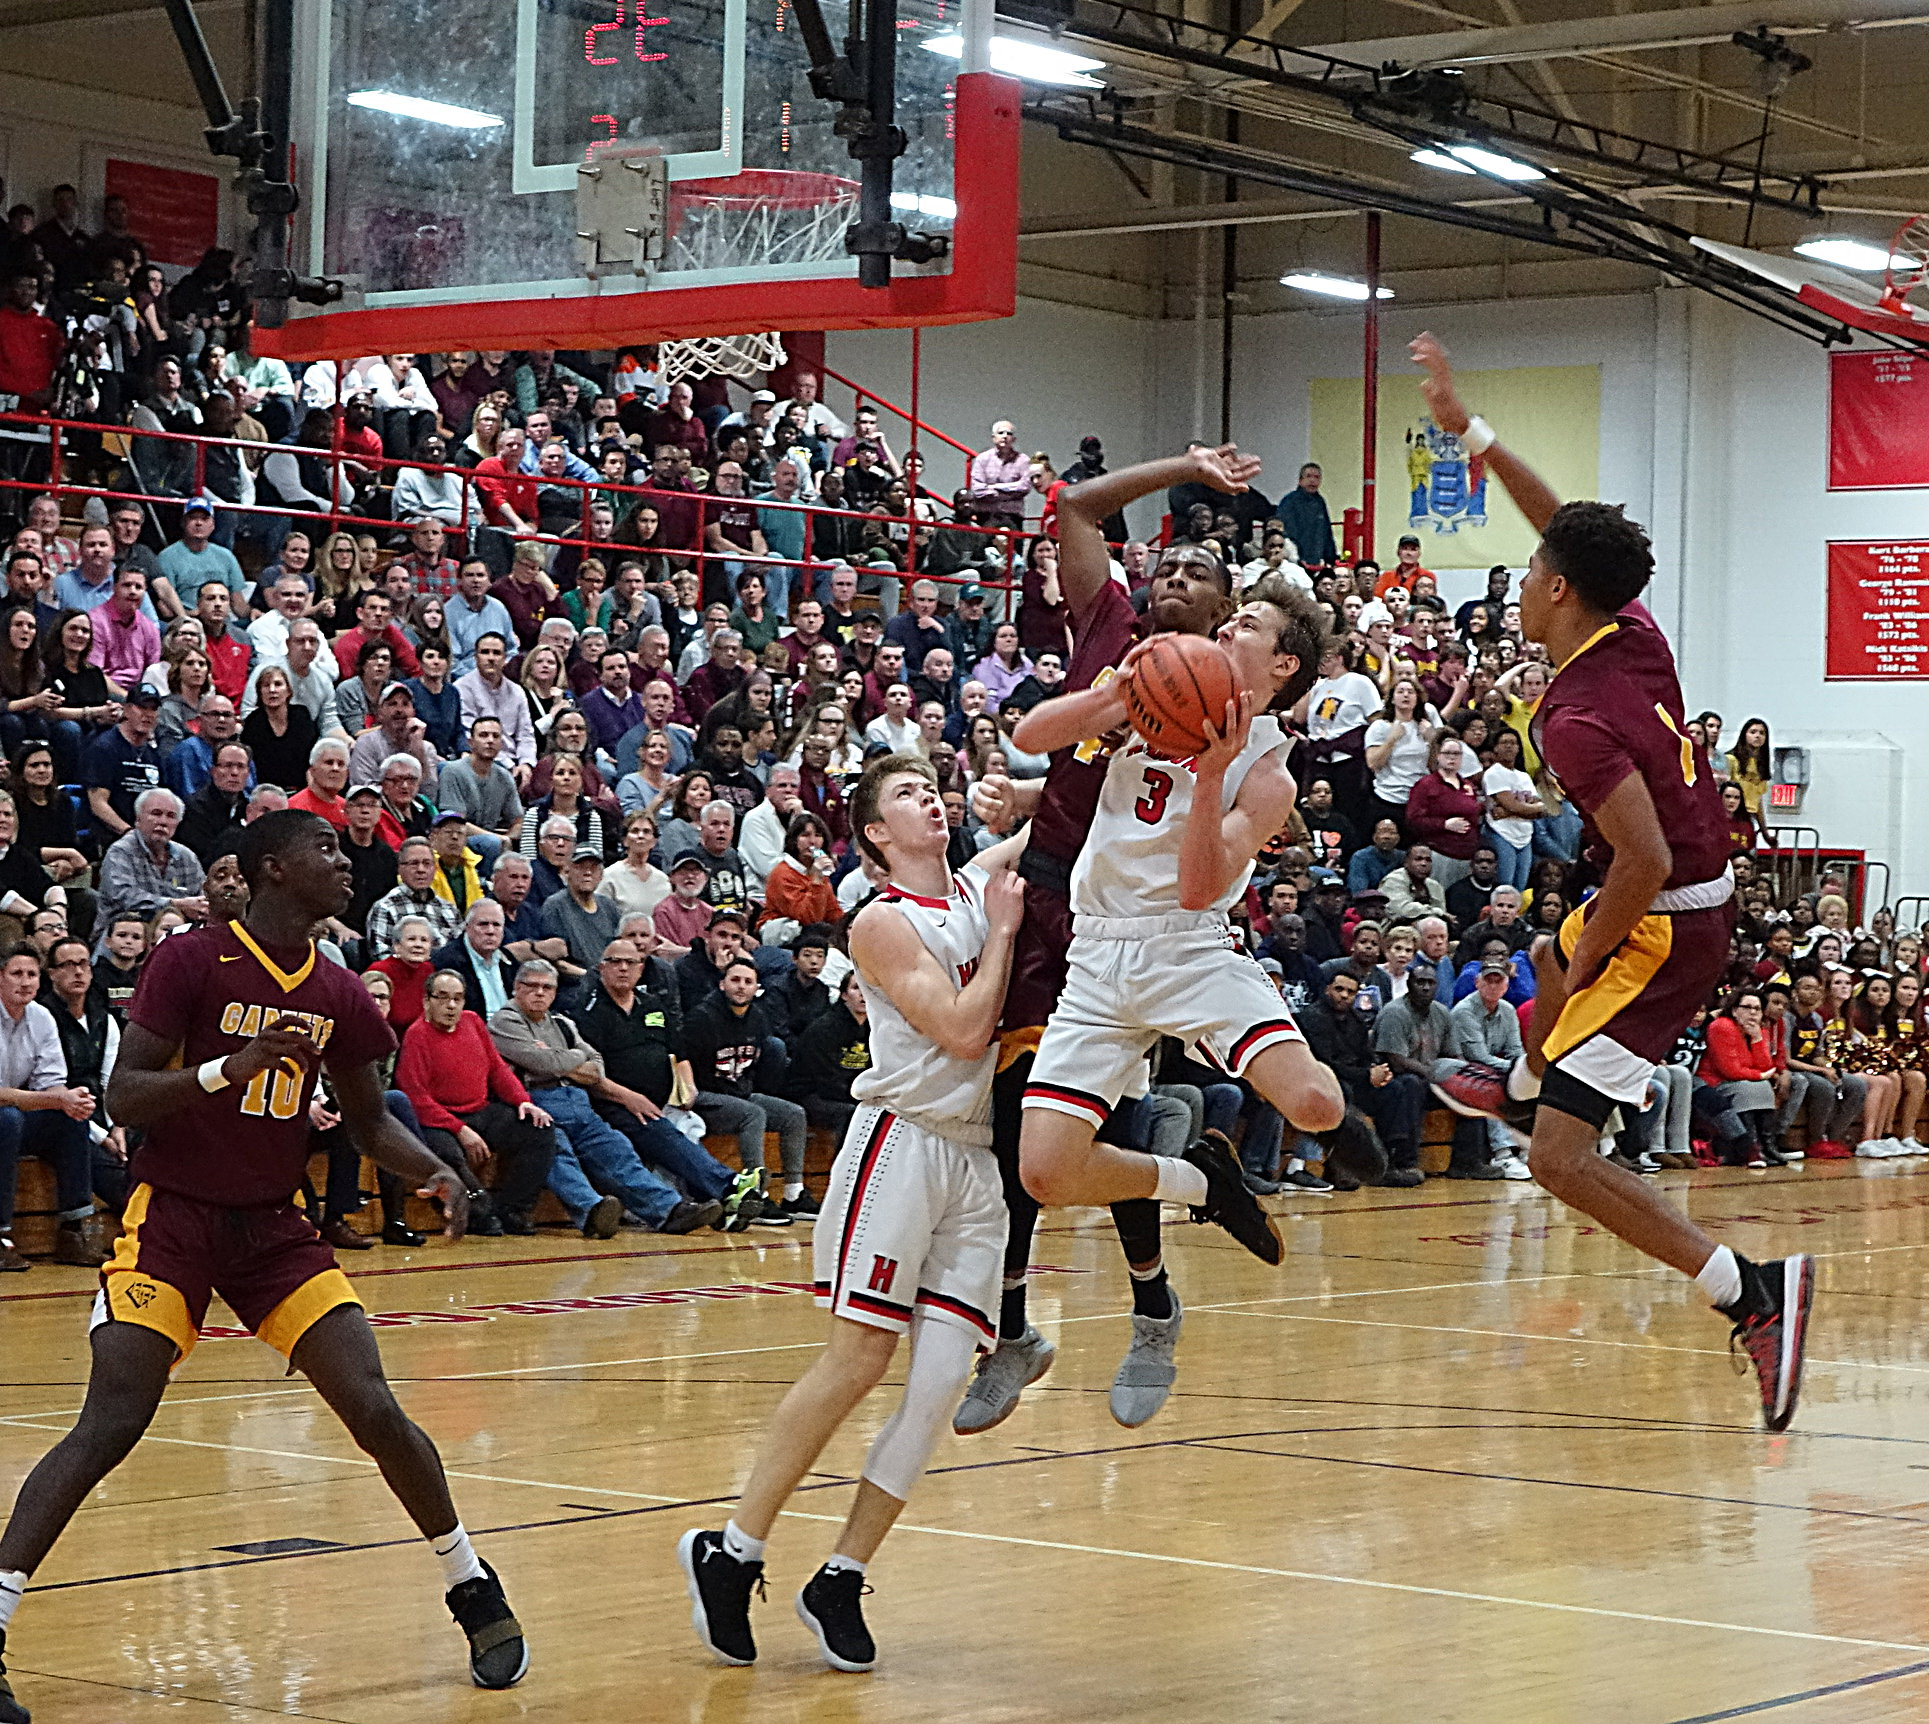 Mike DePersia drives through traffic during Haddonfield´s 52-45 quarterfinal win over Haddon Heights.